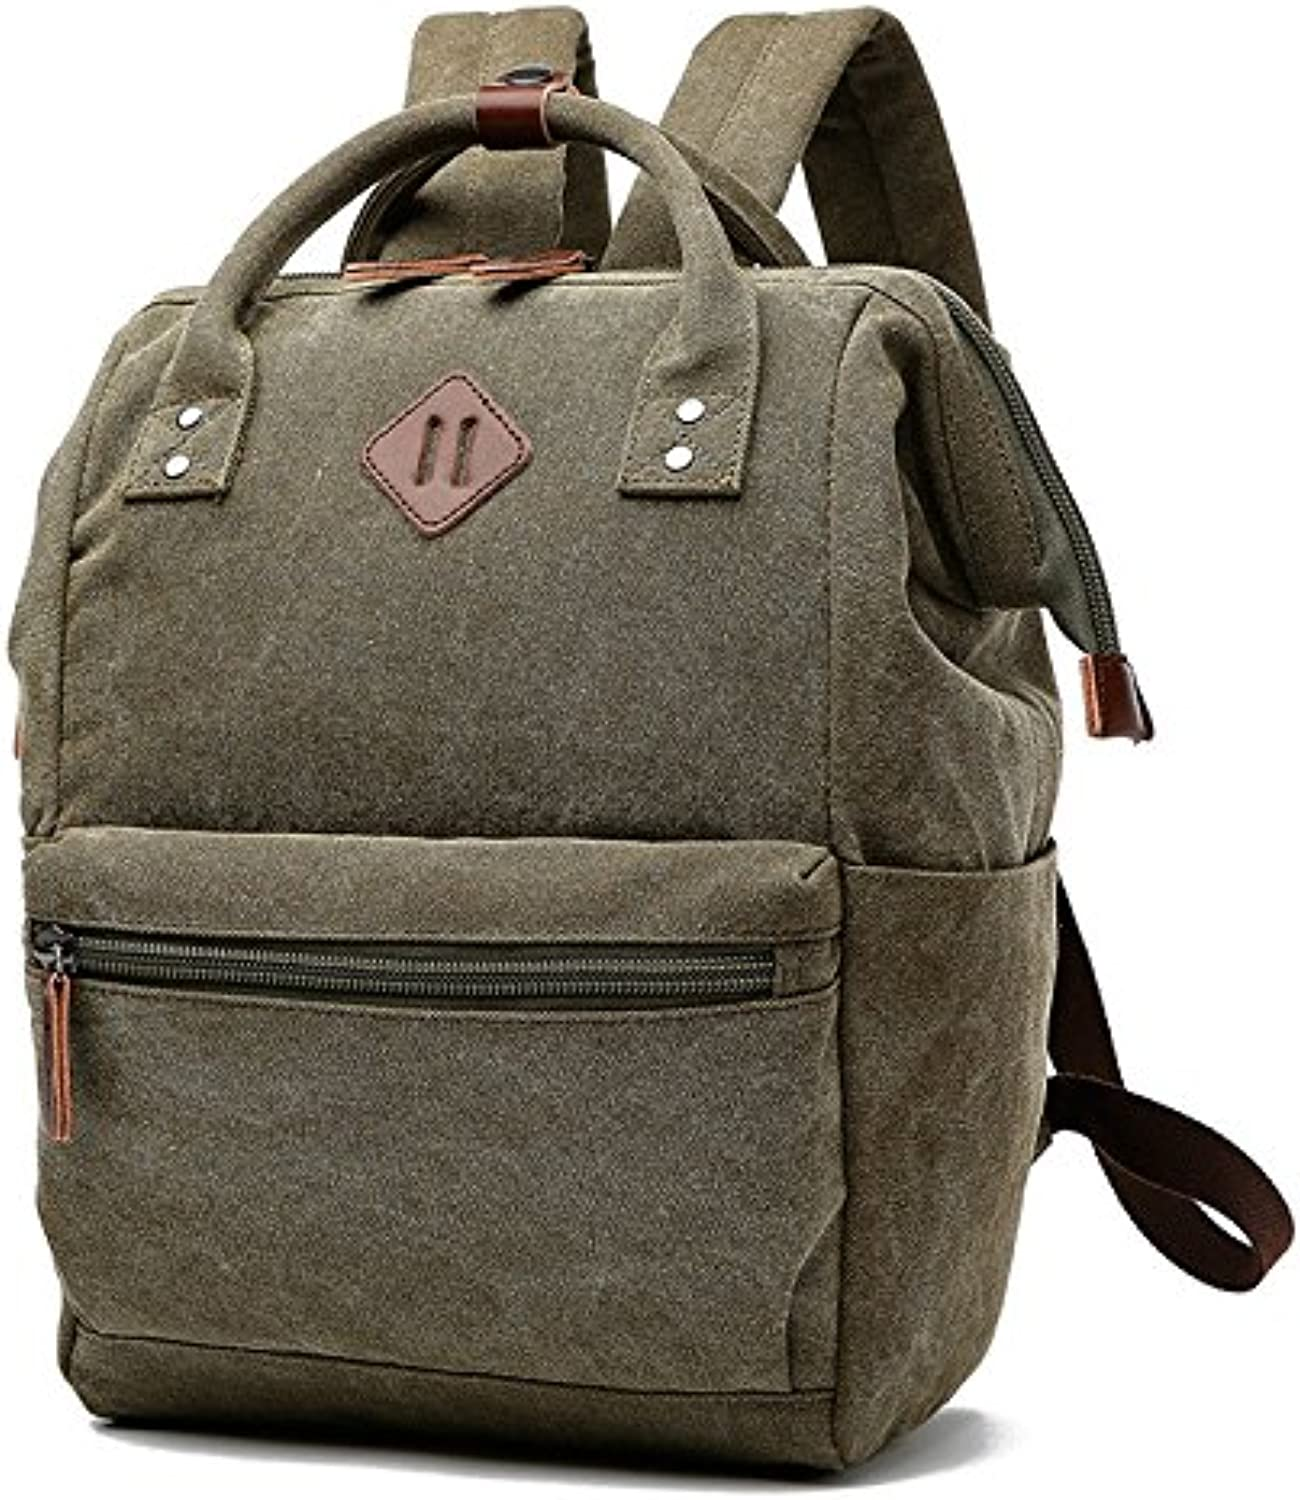 Pure color Wash Canvas Women Bag Large Capacity Casual Backpack Fashion Bag 25 cm  19 cm  36 cm, Army Green